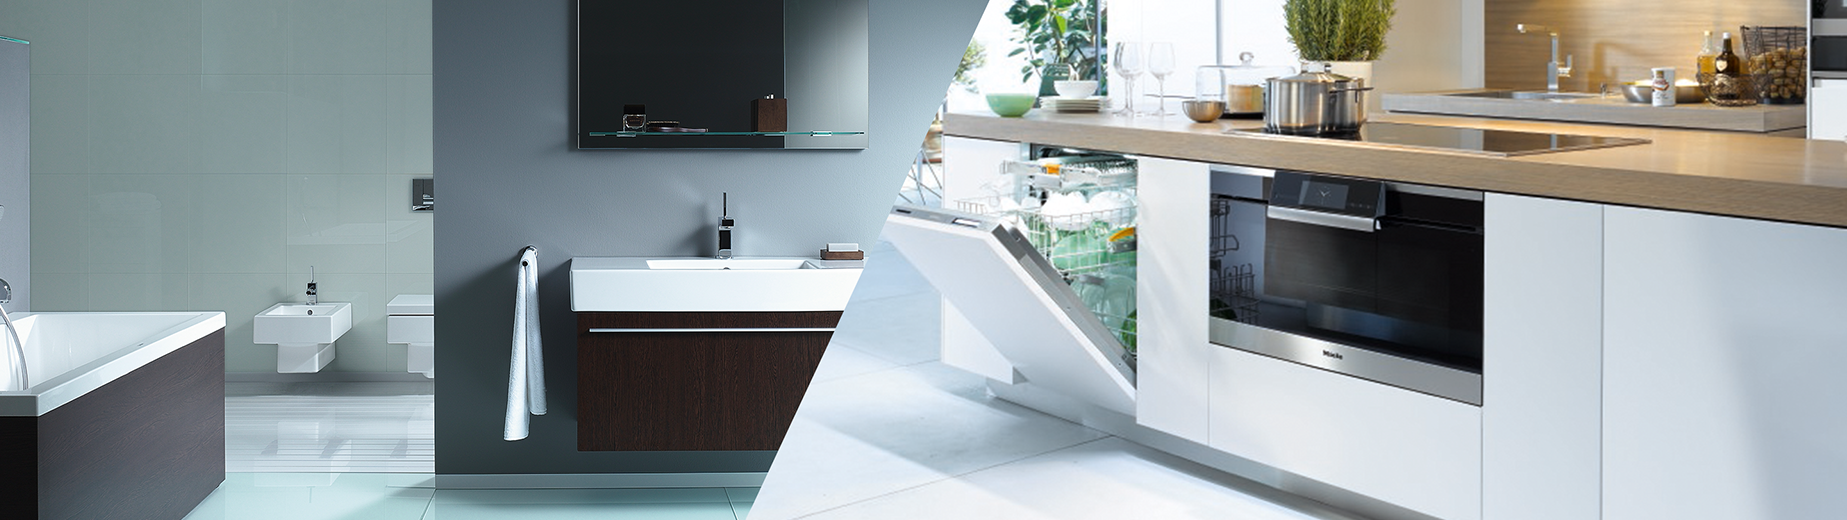 News & Offers | Grant & Stone: Kitchens & Bathrooms